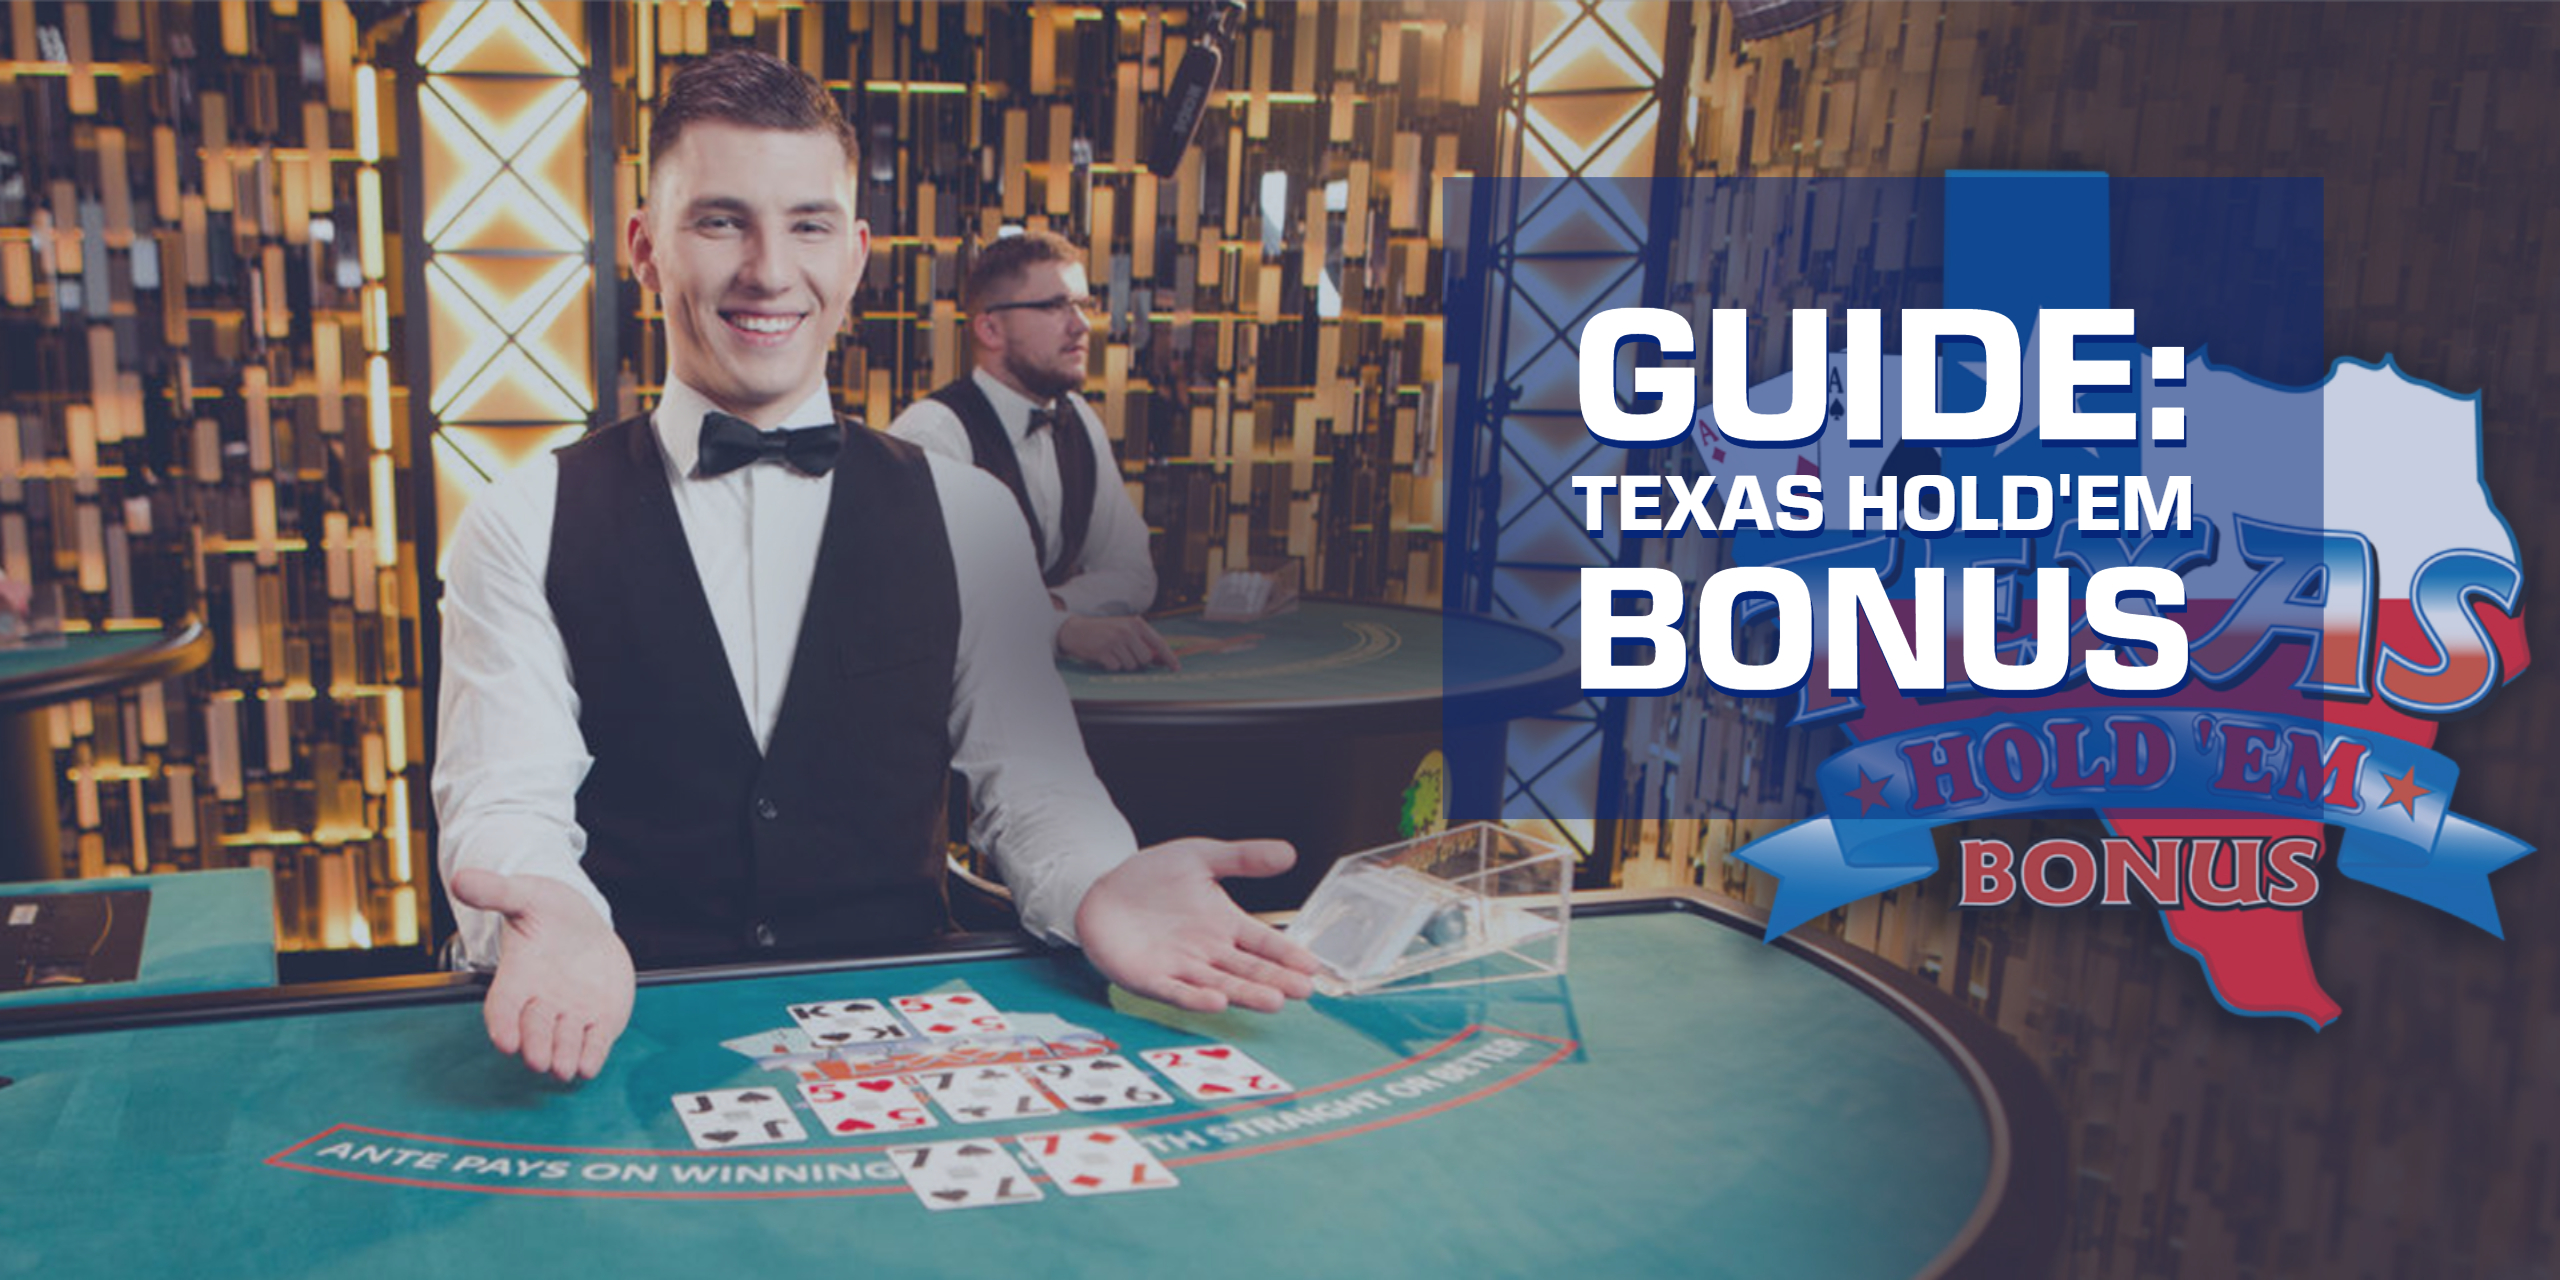 Guide_-_Texas_Holdem_Bonus_2